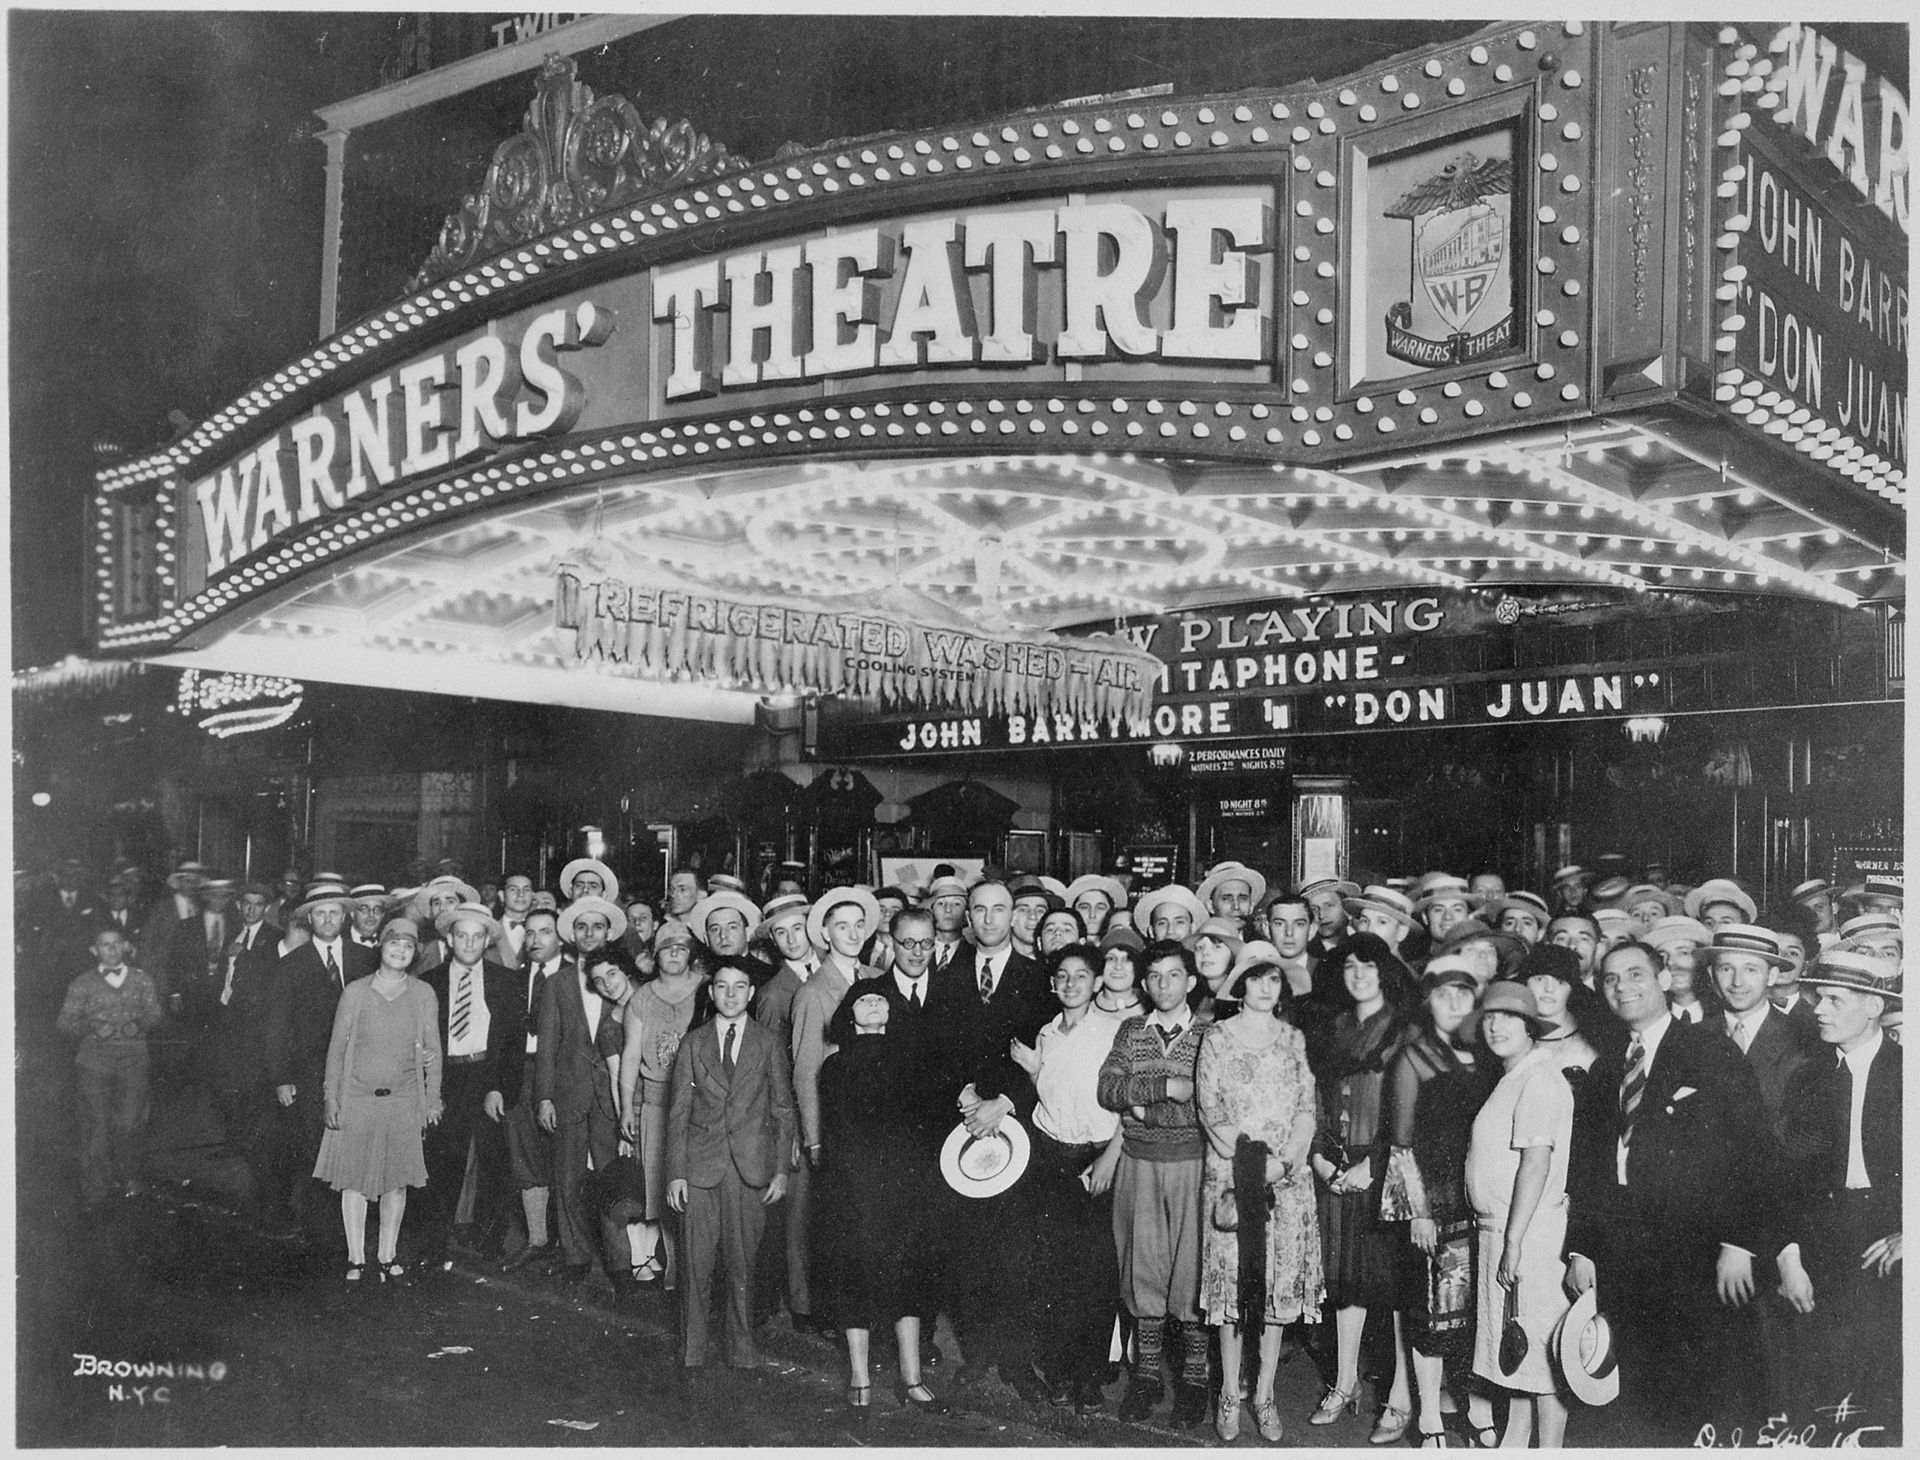 First-nighters_posing_for_the_camera_outside_the_Warners'_Theater_before_the_premiere_of_-Don_Juan-_with_John_Barrymore,_-_NARA_-_535750.jpg